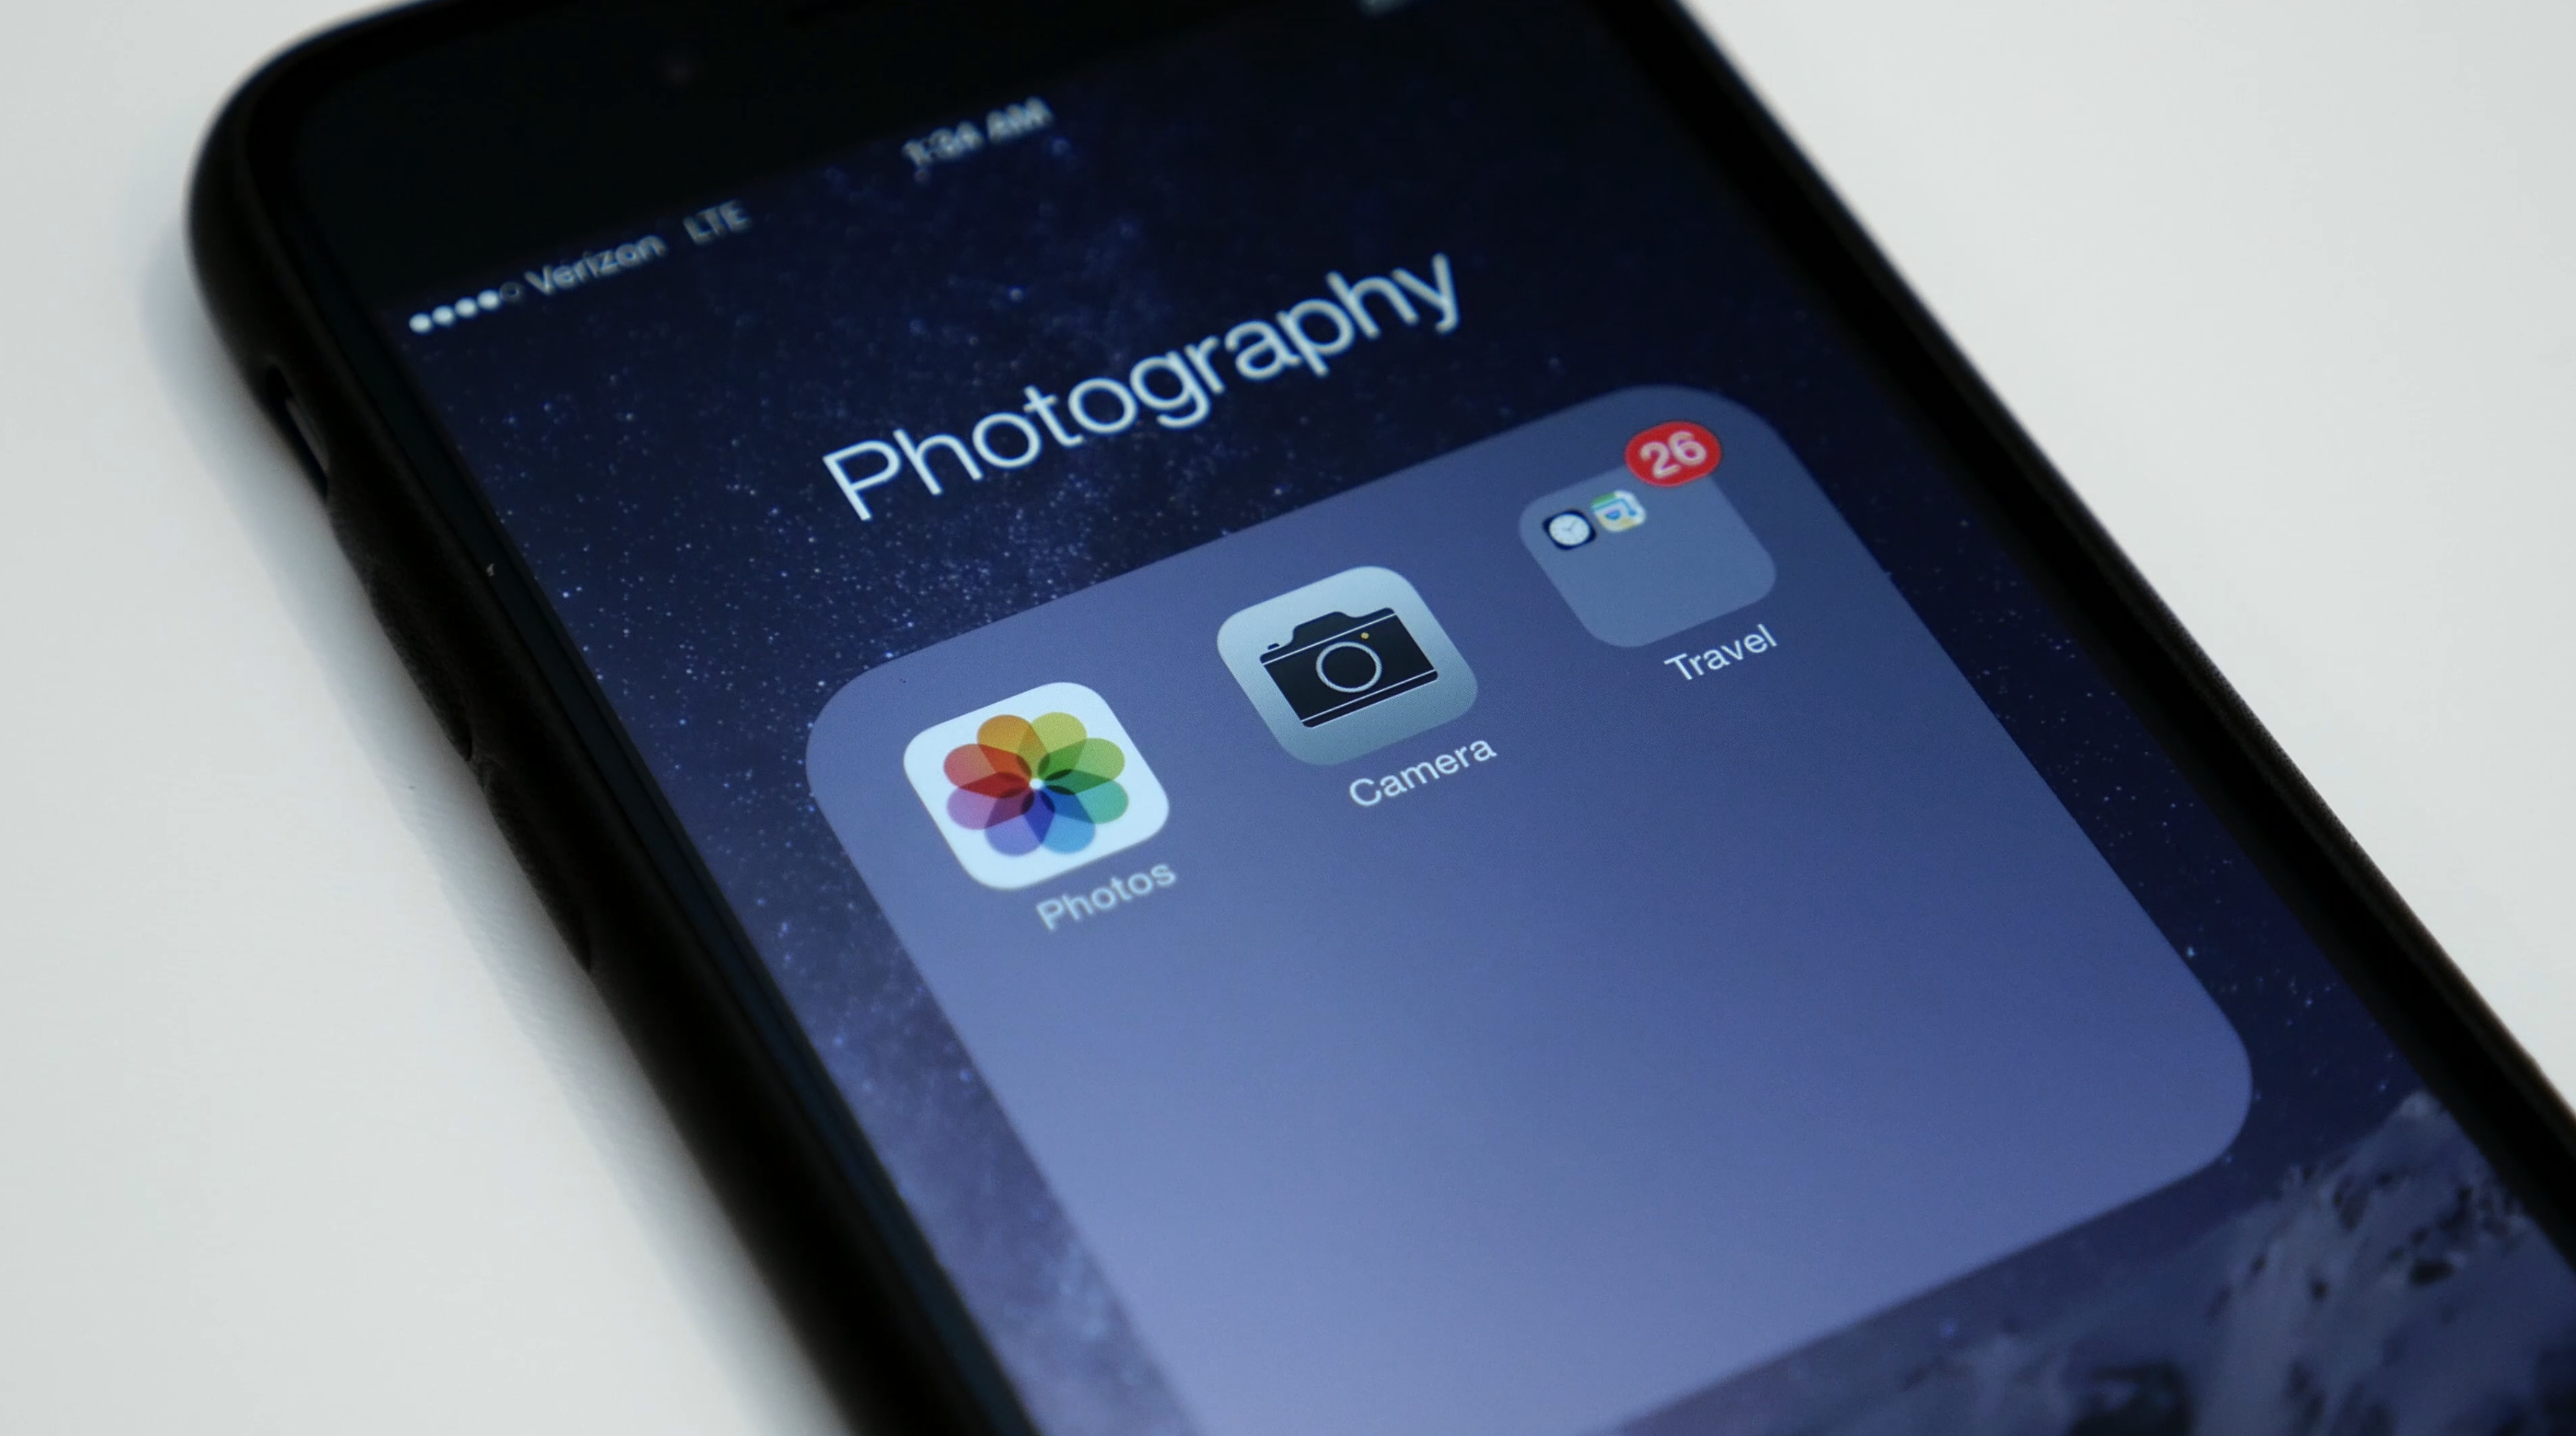 How to empty the recently deleted picture folder in iOS 9